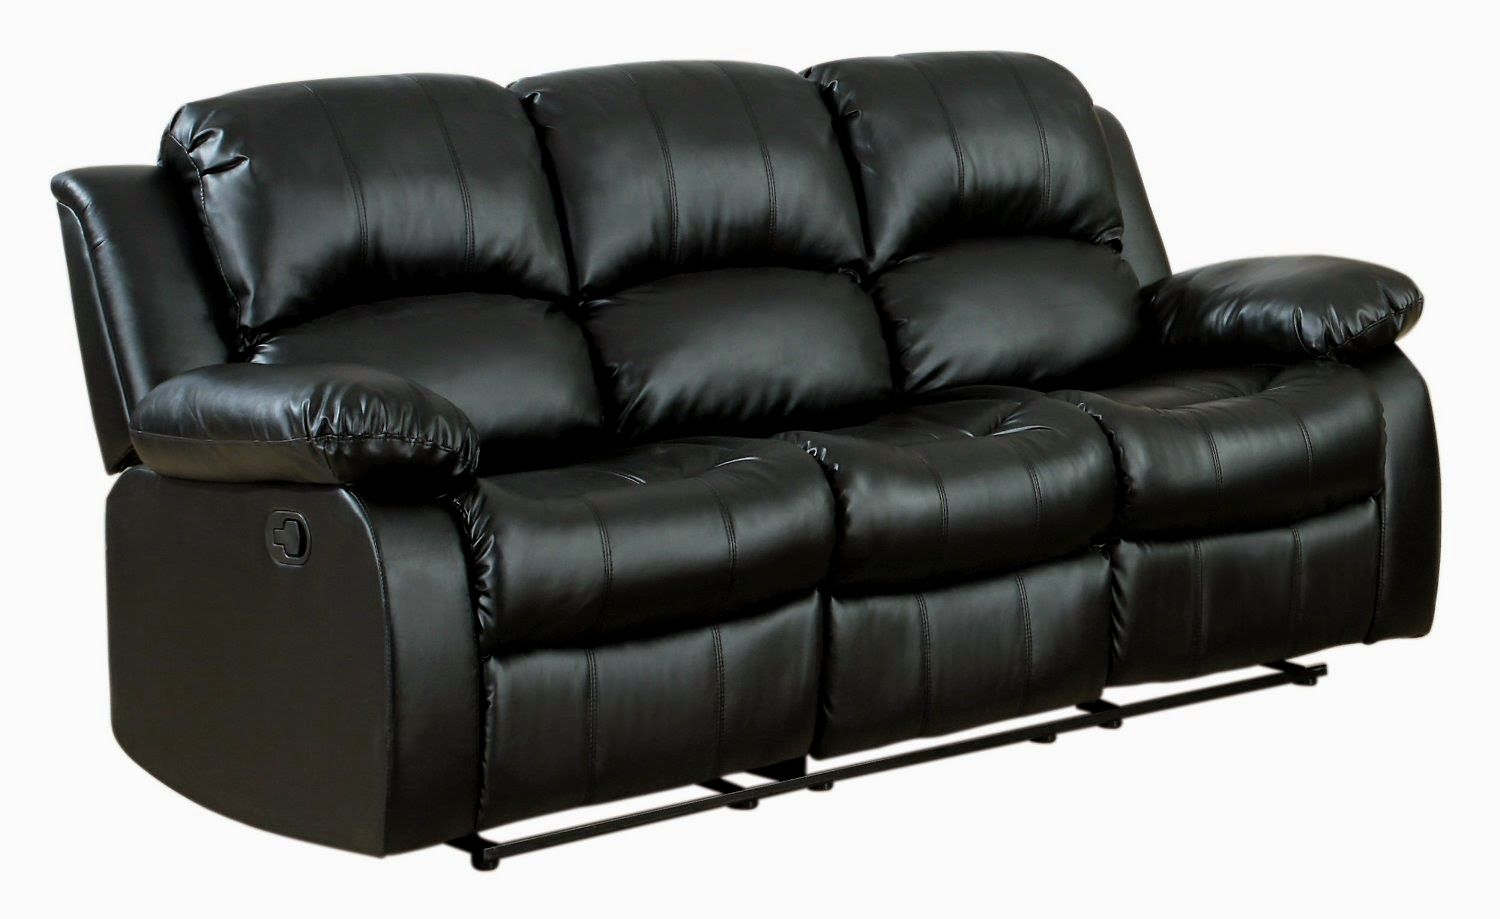 best leather reclining sofa décor-Unique Leather Reclining sofa Wallpaper